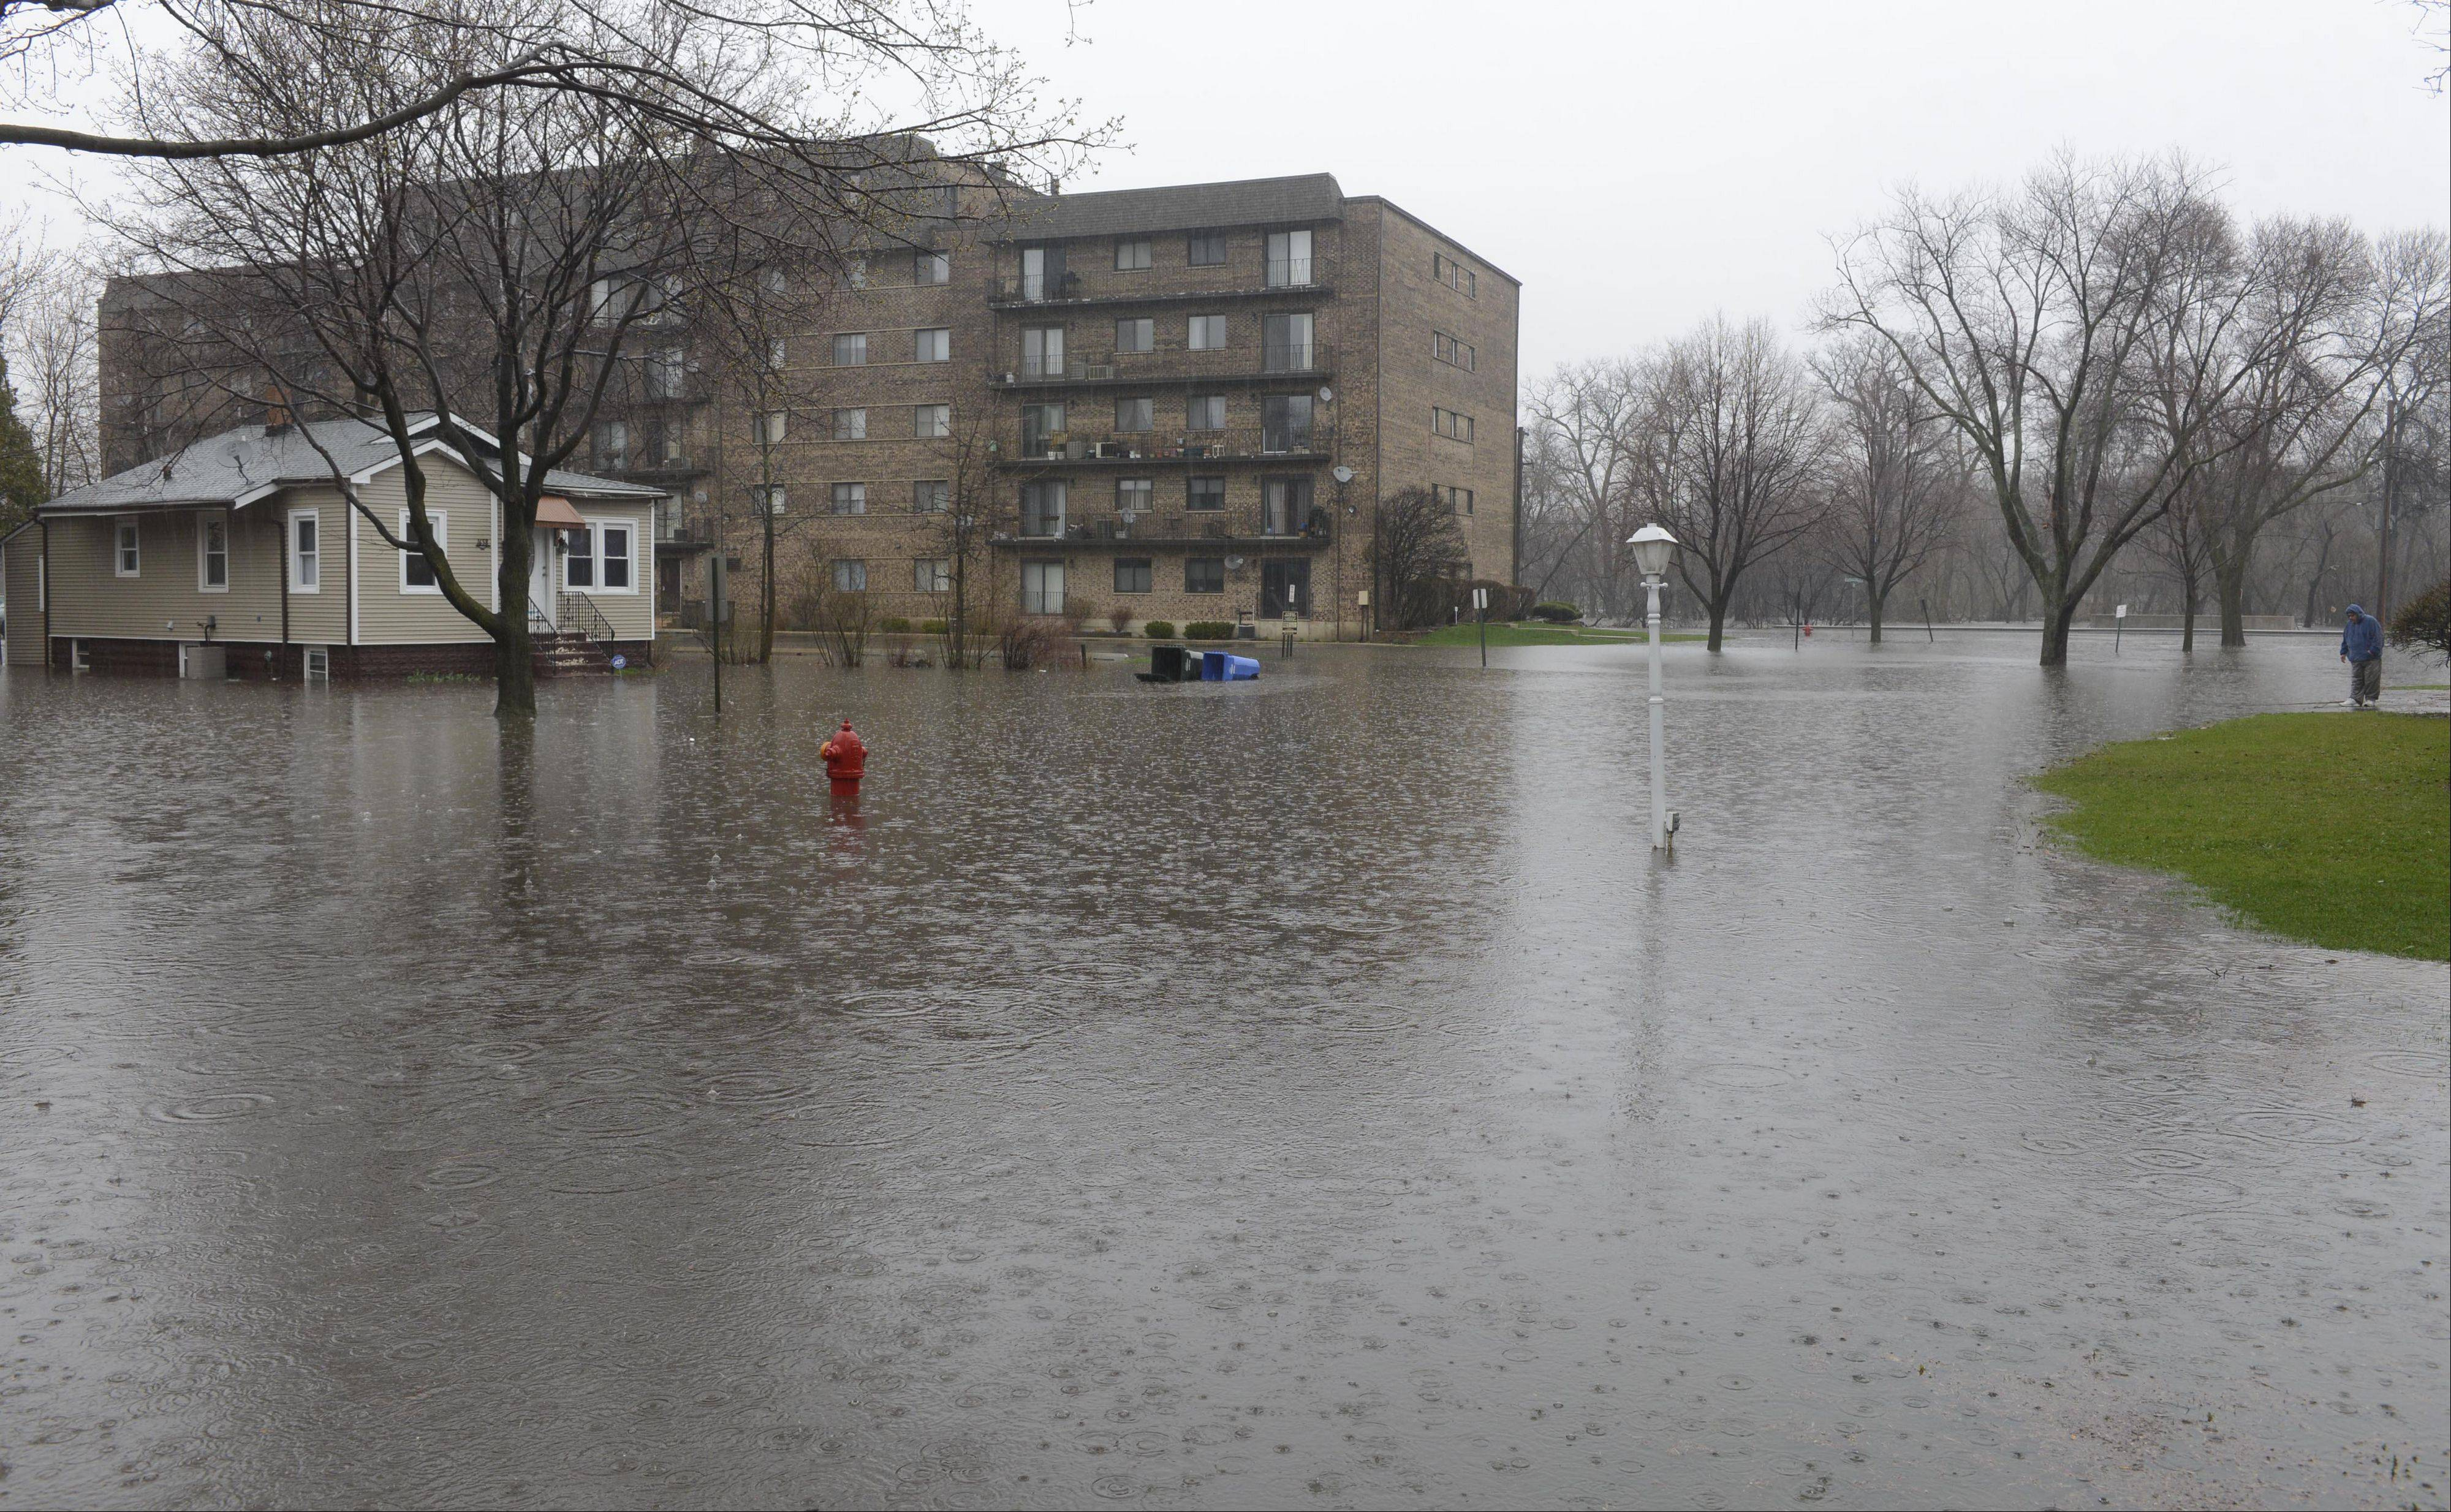 Oakwood Avenue in Des Plaines, just west of the river, is closed due to flooding Thursday.